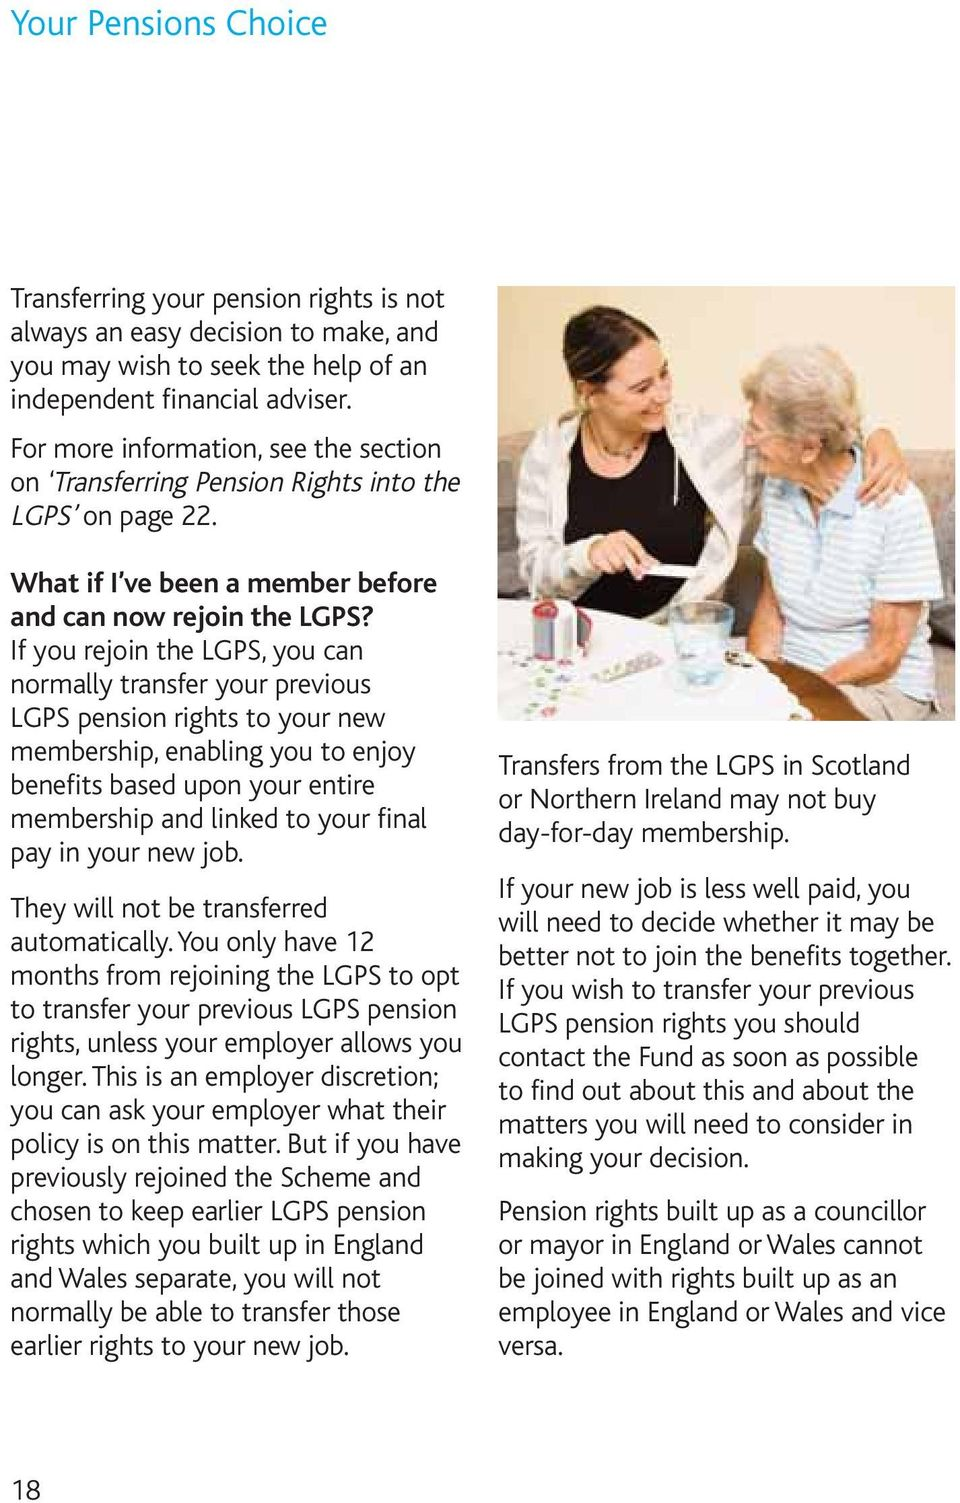 If you rejoin the LGPS, you can normally transfer your previous LGPS pension rights to your new membership, enabling you to enjoy benefits based upon your entire membership and linked to your final